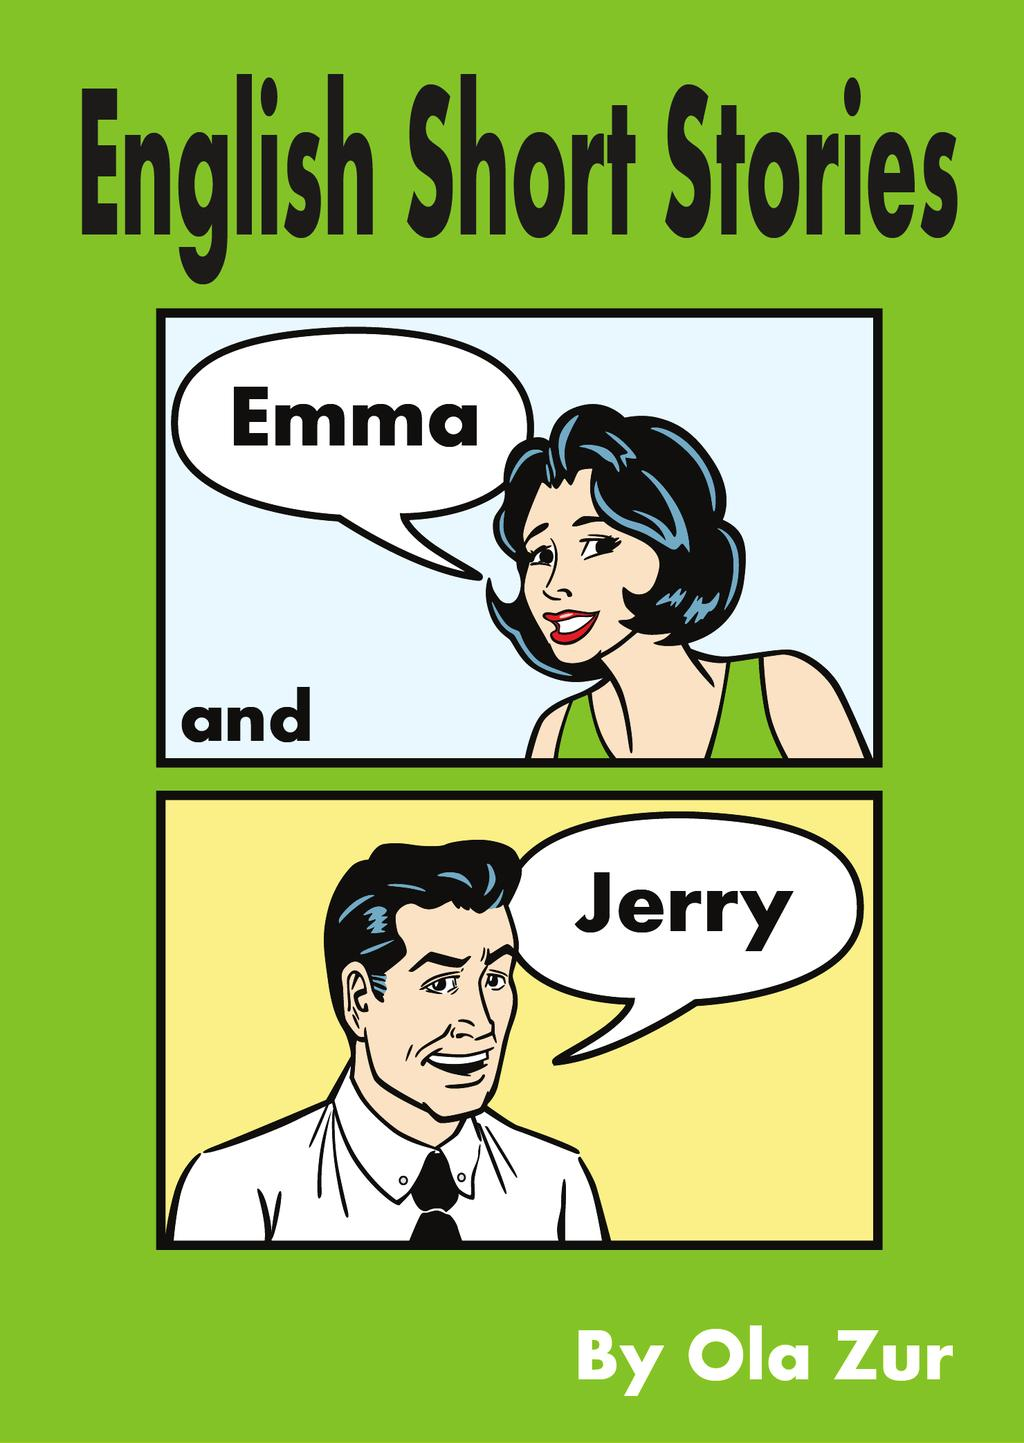 1 English Short Stories for Beginners, www.